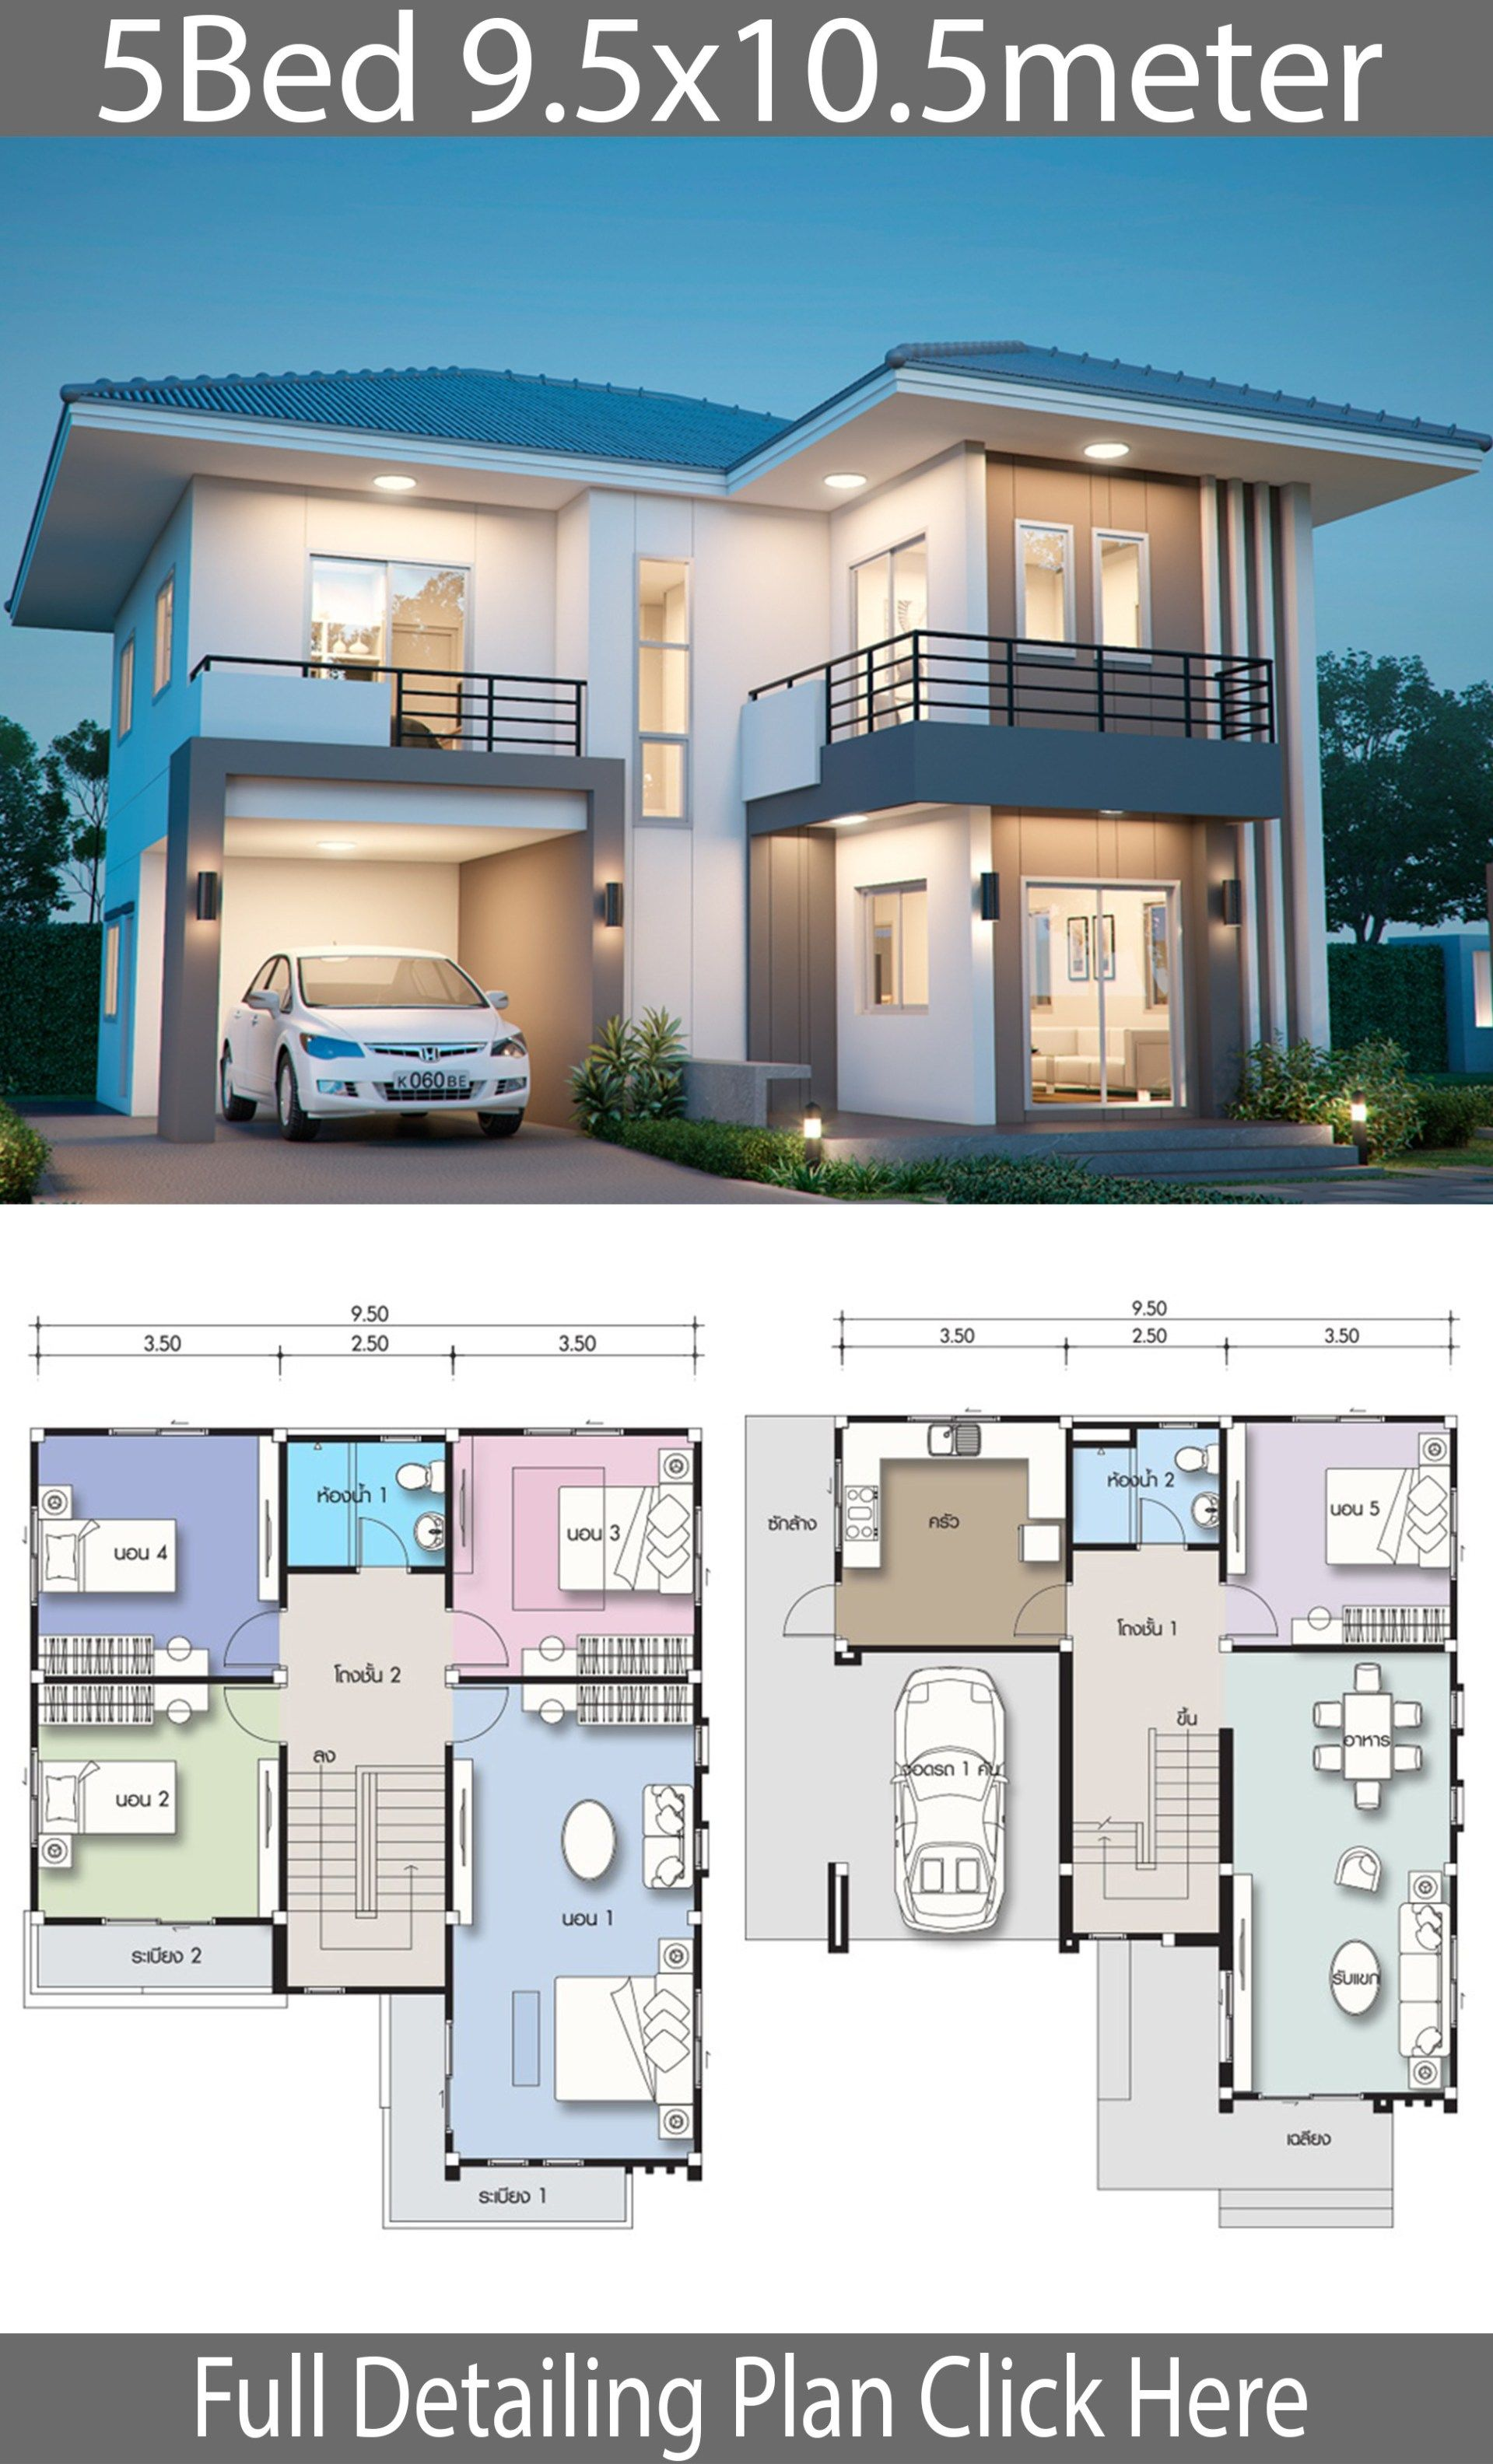 House Design Plan 9 5x10 5m With 5 Bedrooms Home Ideas Duplex House Design Duplex House Plans Simple House Design